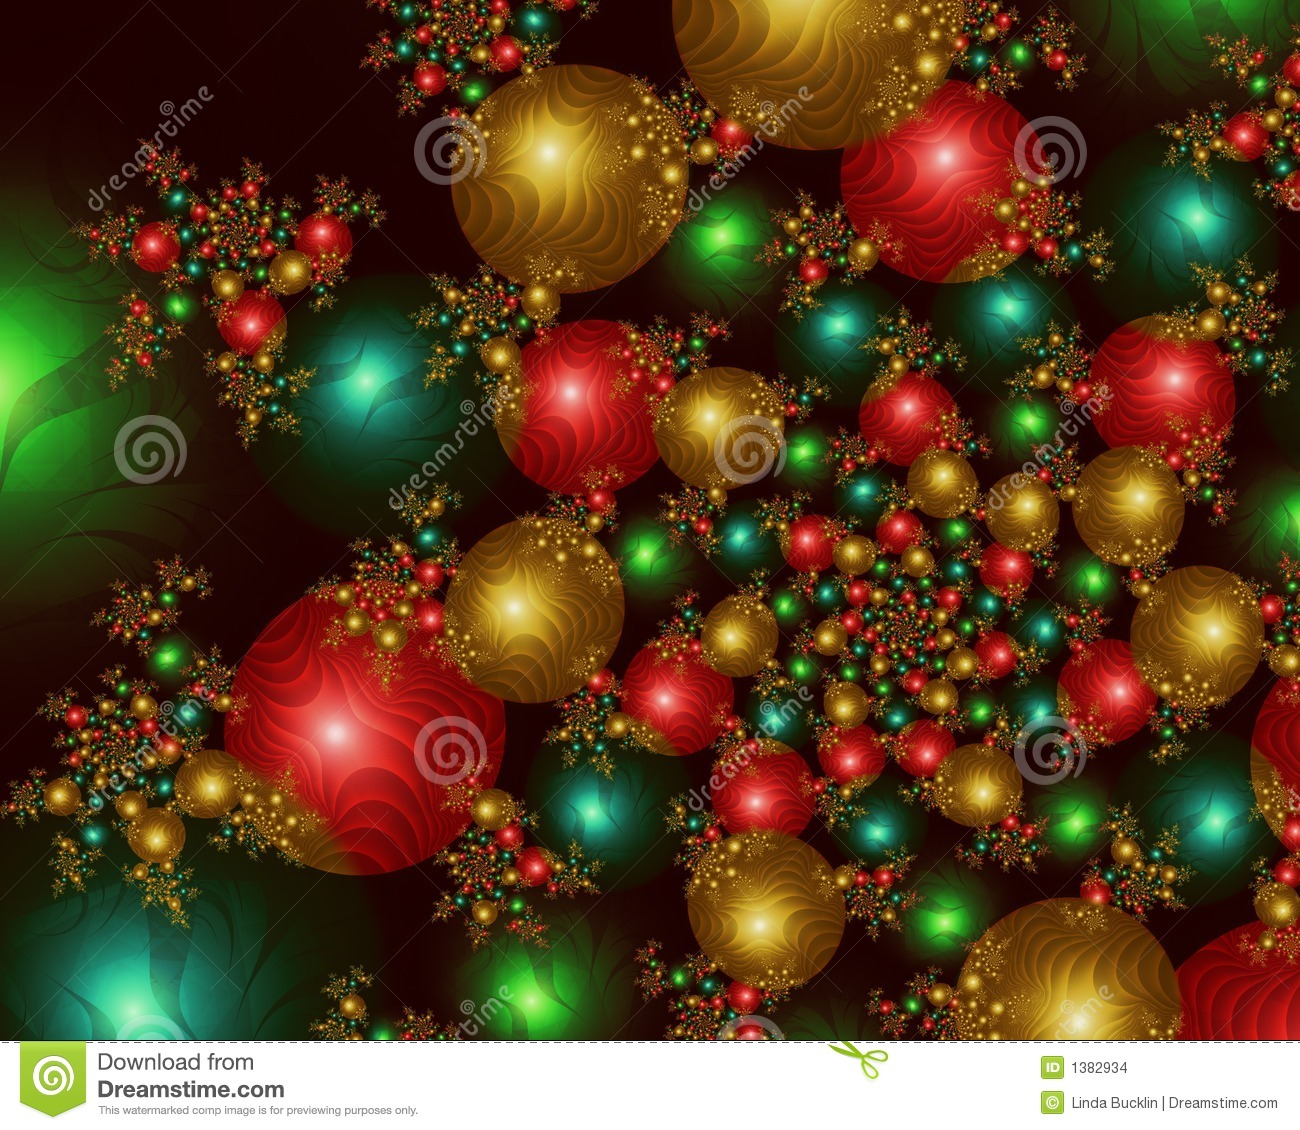 Infinite Christmas Balls Fractal Image Stock Images